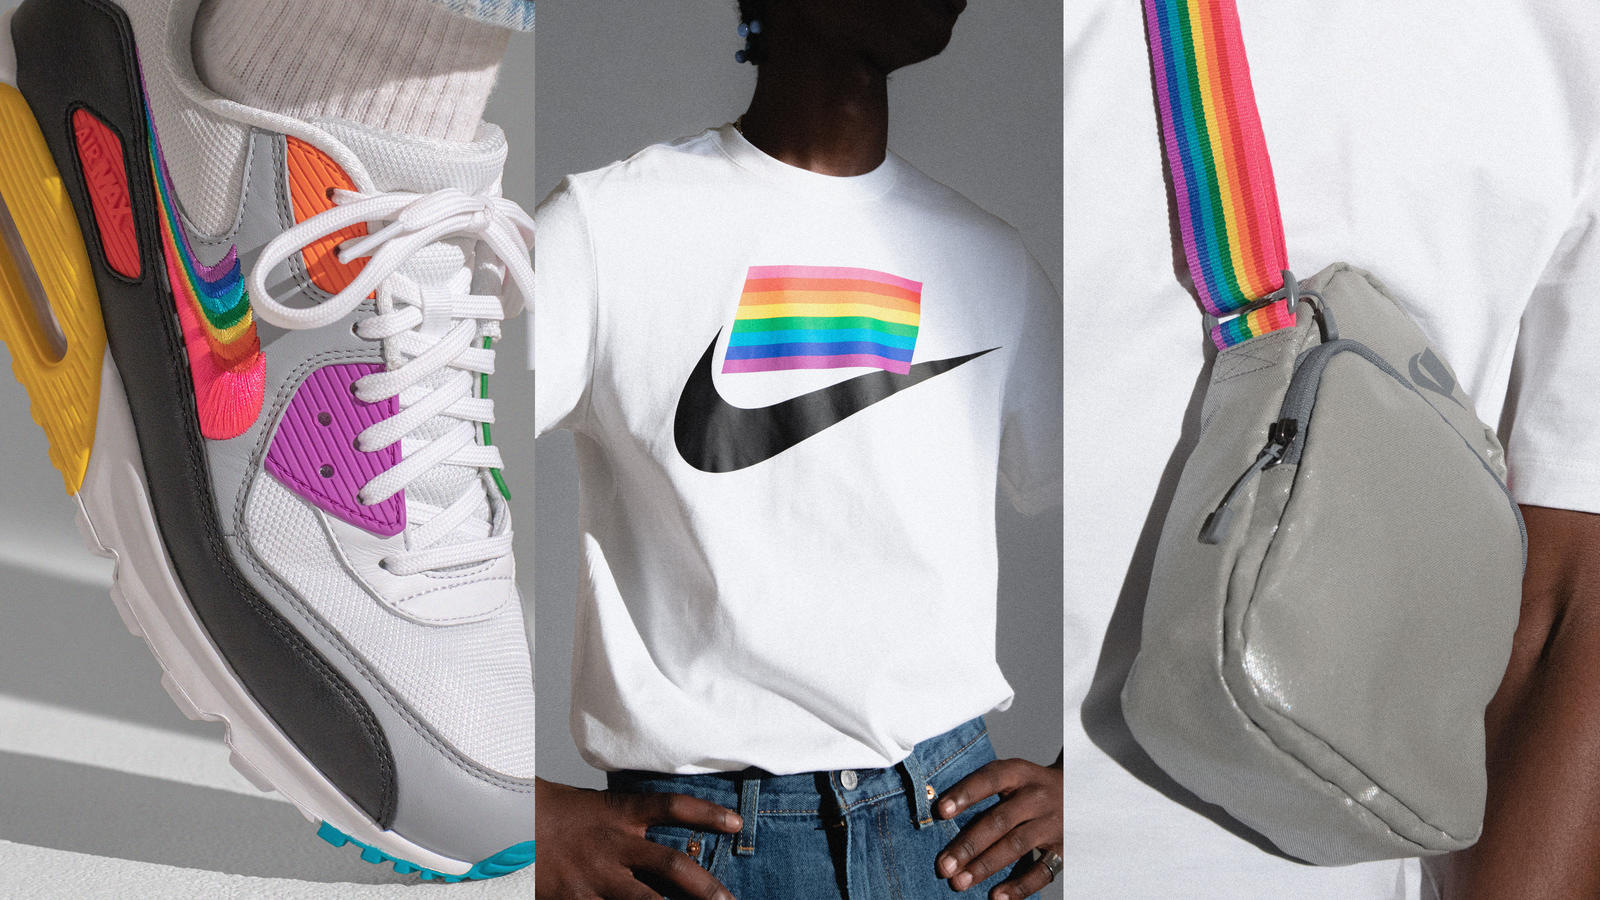 Nike-BeTrue-2019-Collection_88097.jpg